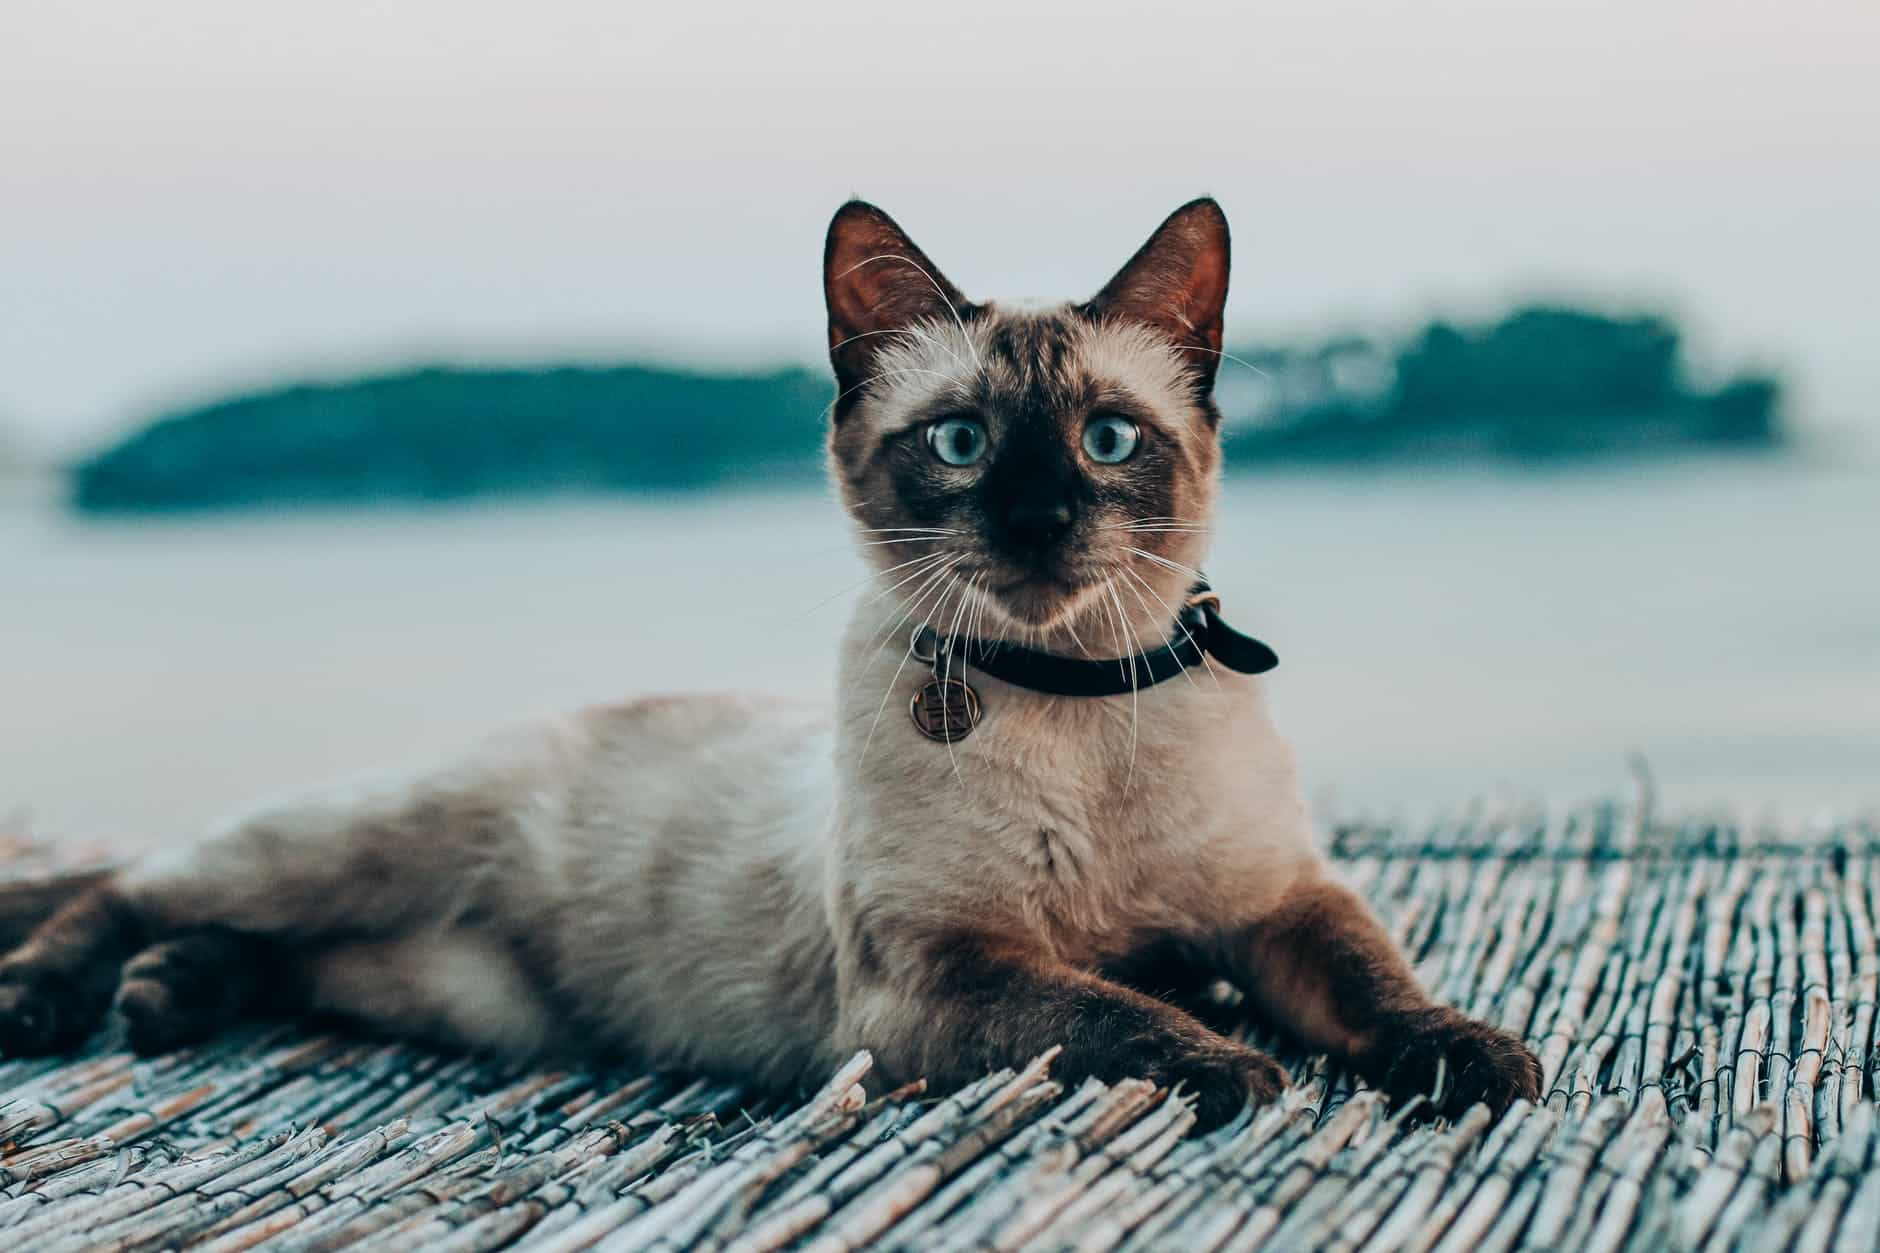 Siamese cats come from Thailand